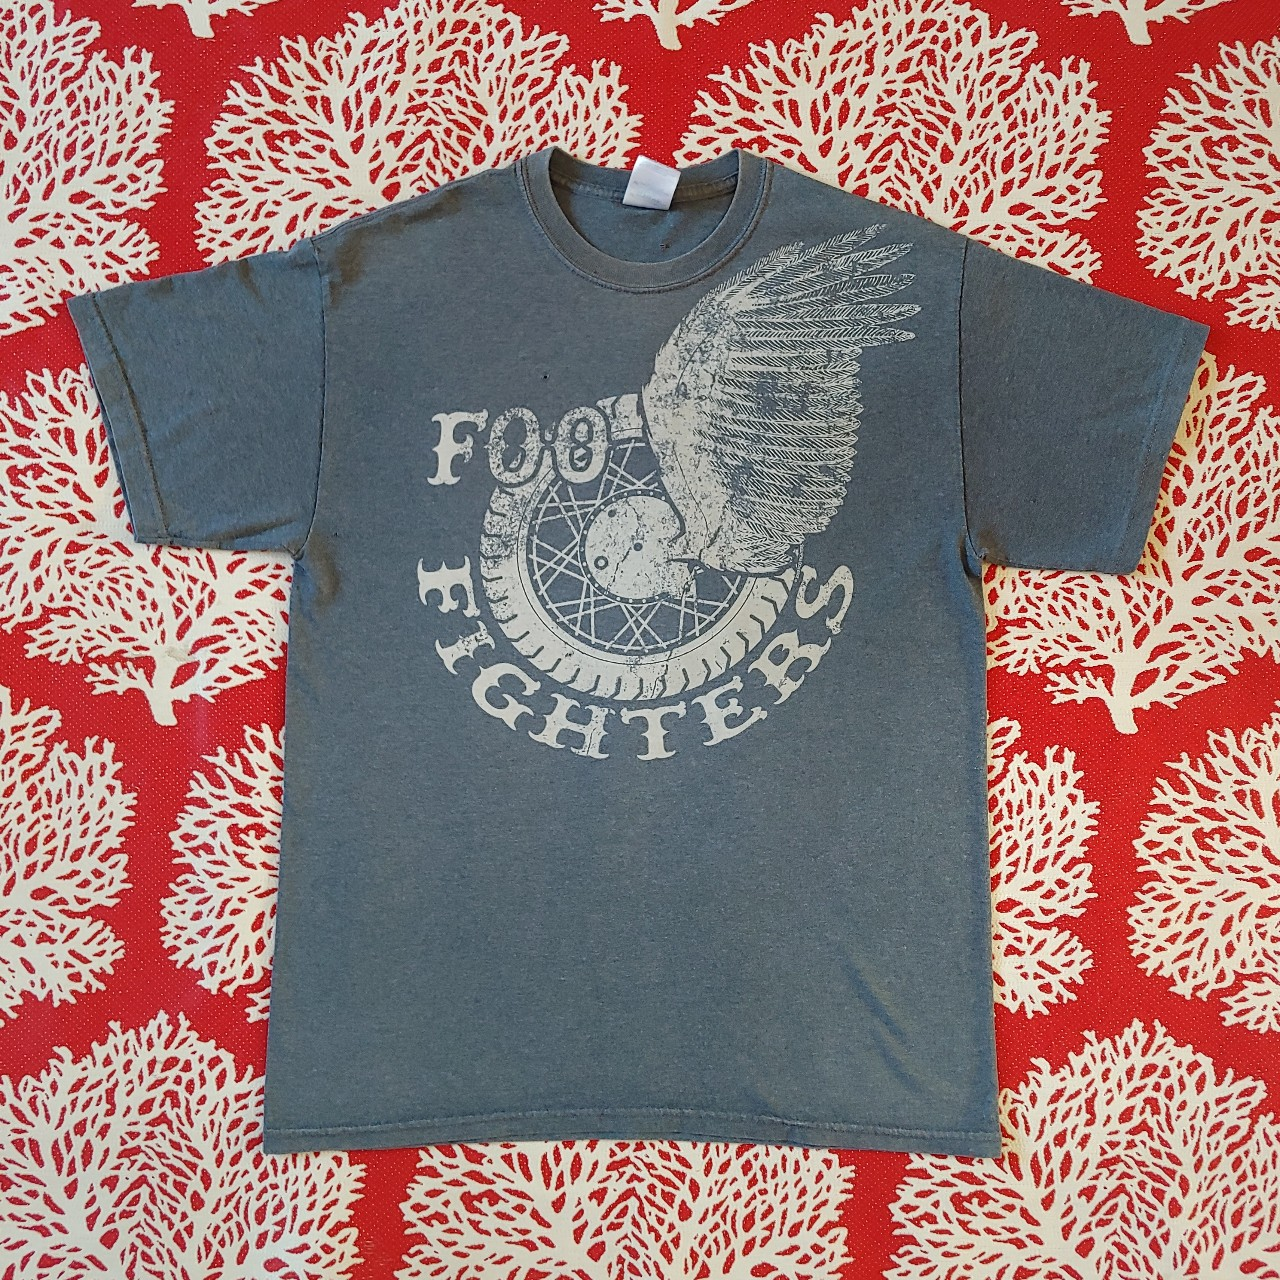 Product Image 1 - Foo fighters t-shirt In good condition Does